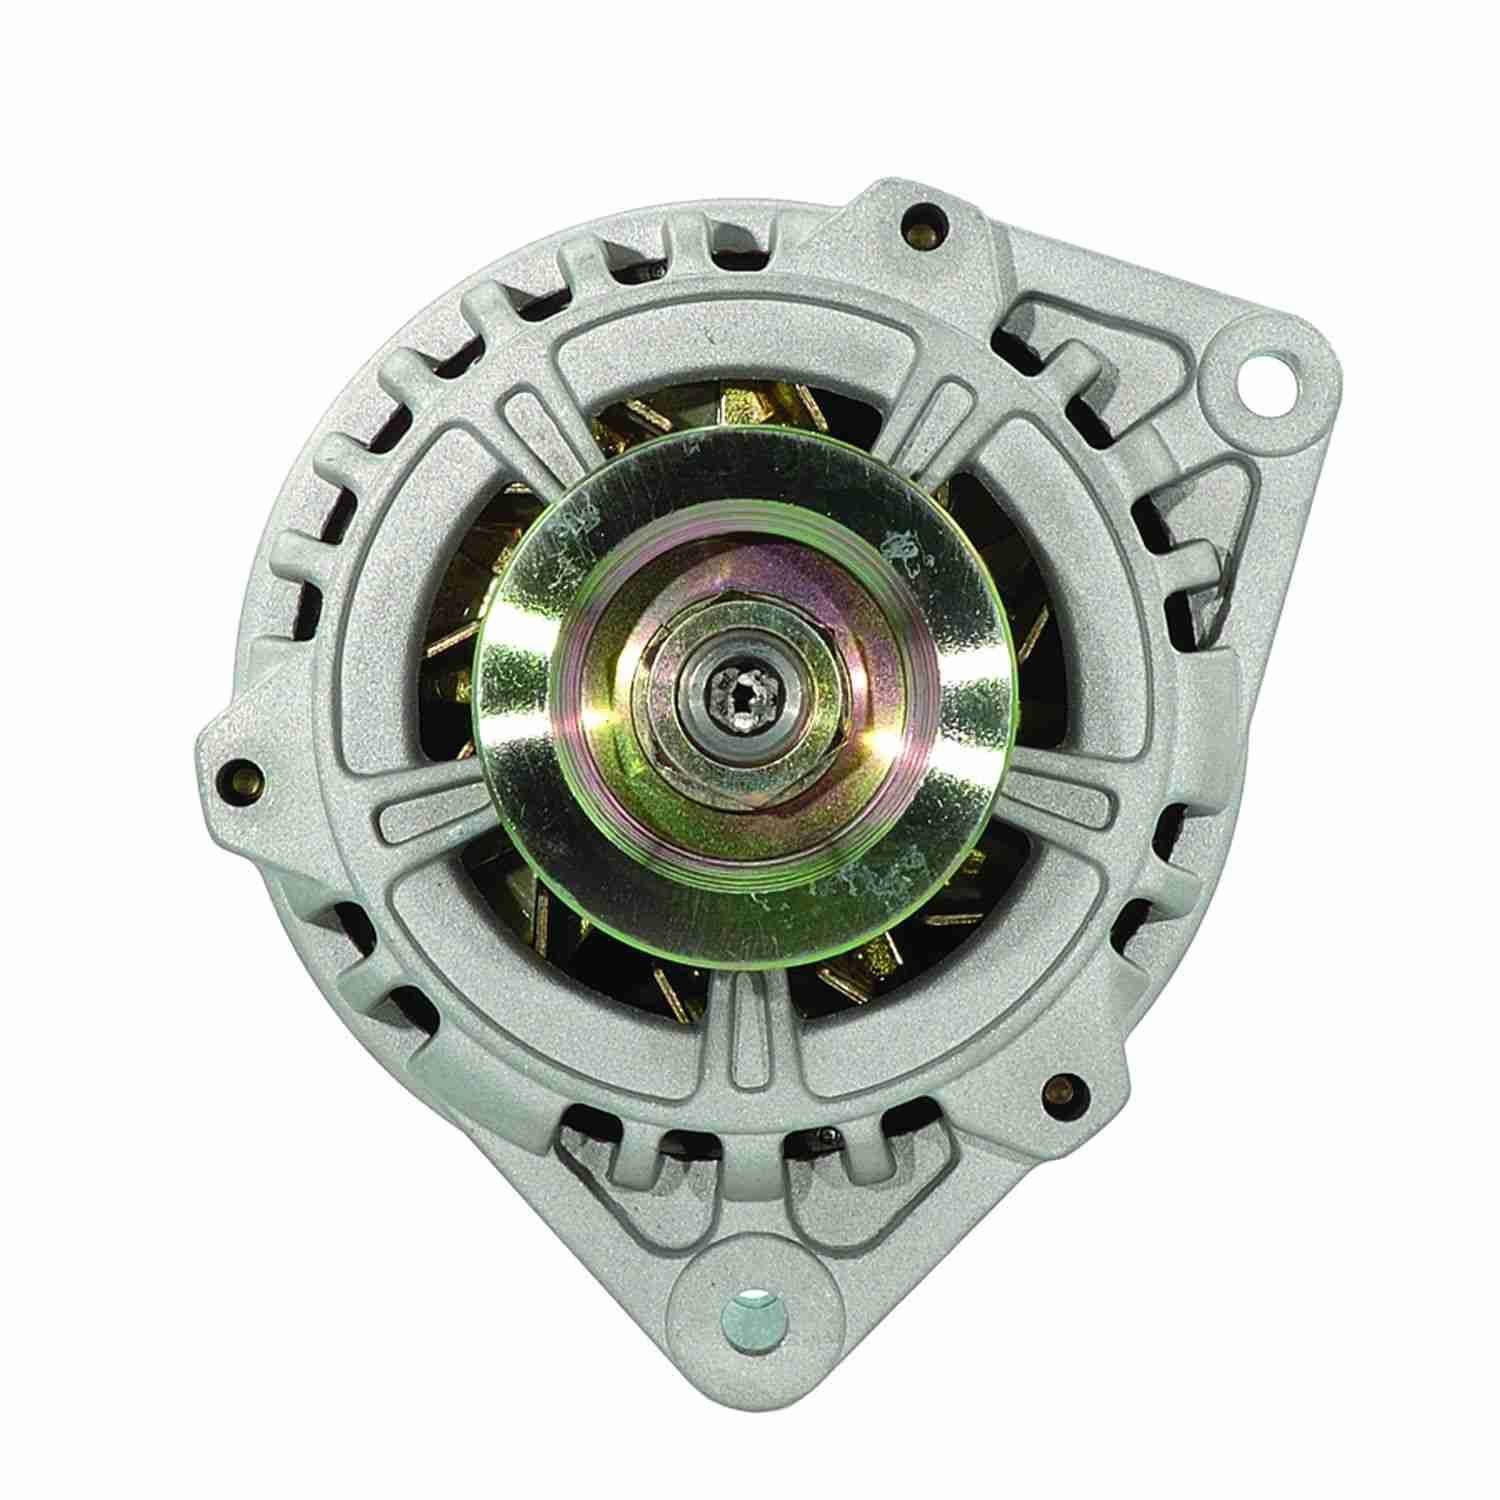 ACDELCO GOLD/PROFESSIONAL - Alternator - DCC 335-1002